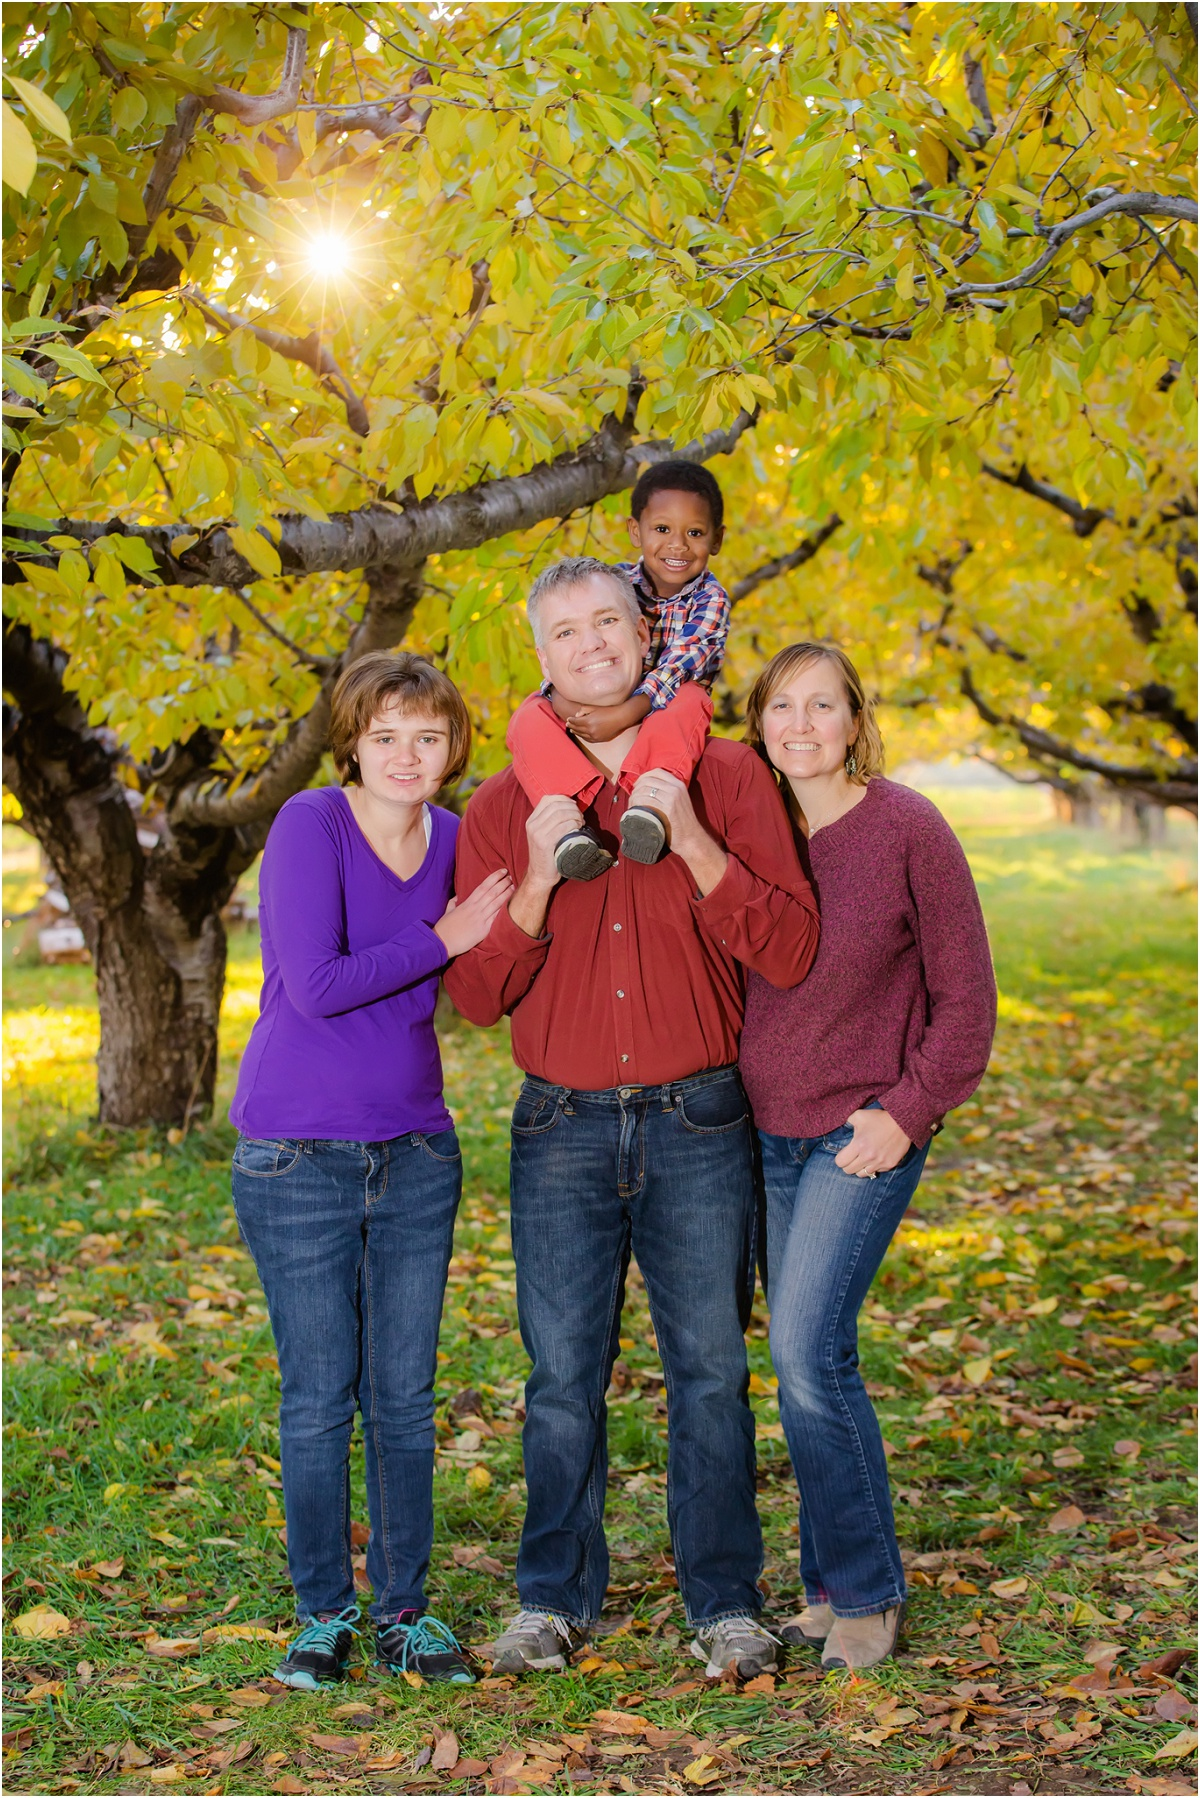 Terra Cooper Photography Utah Family Photography_5137.jpg